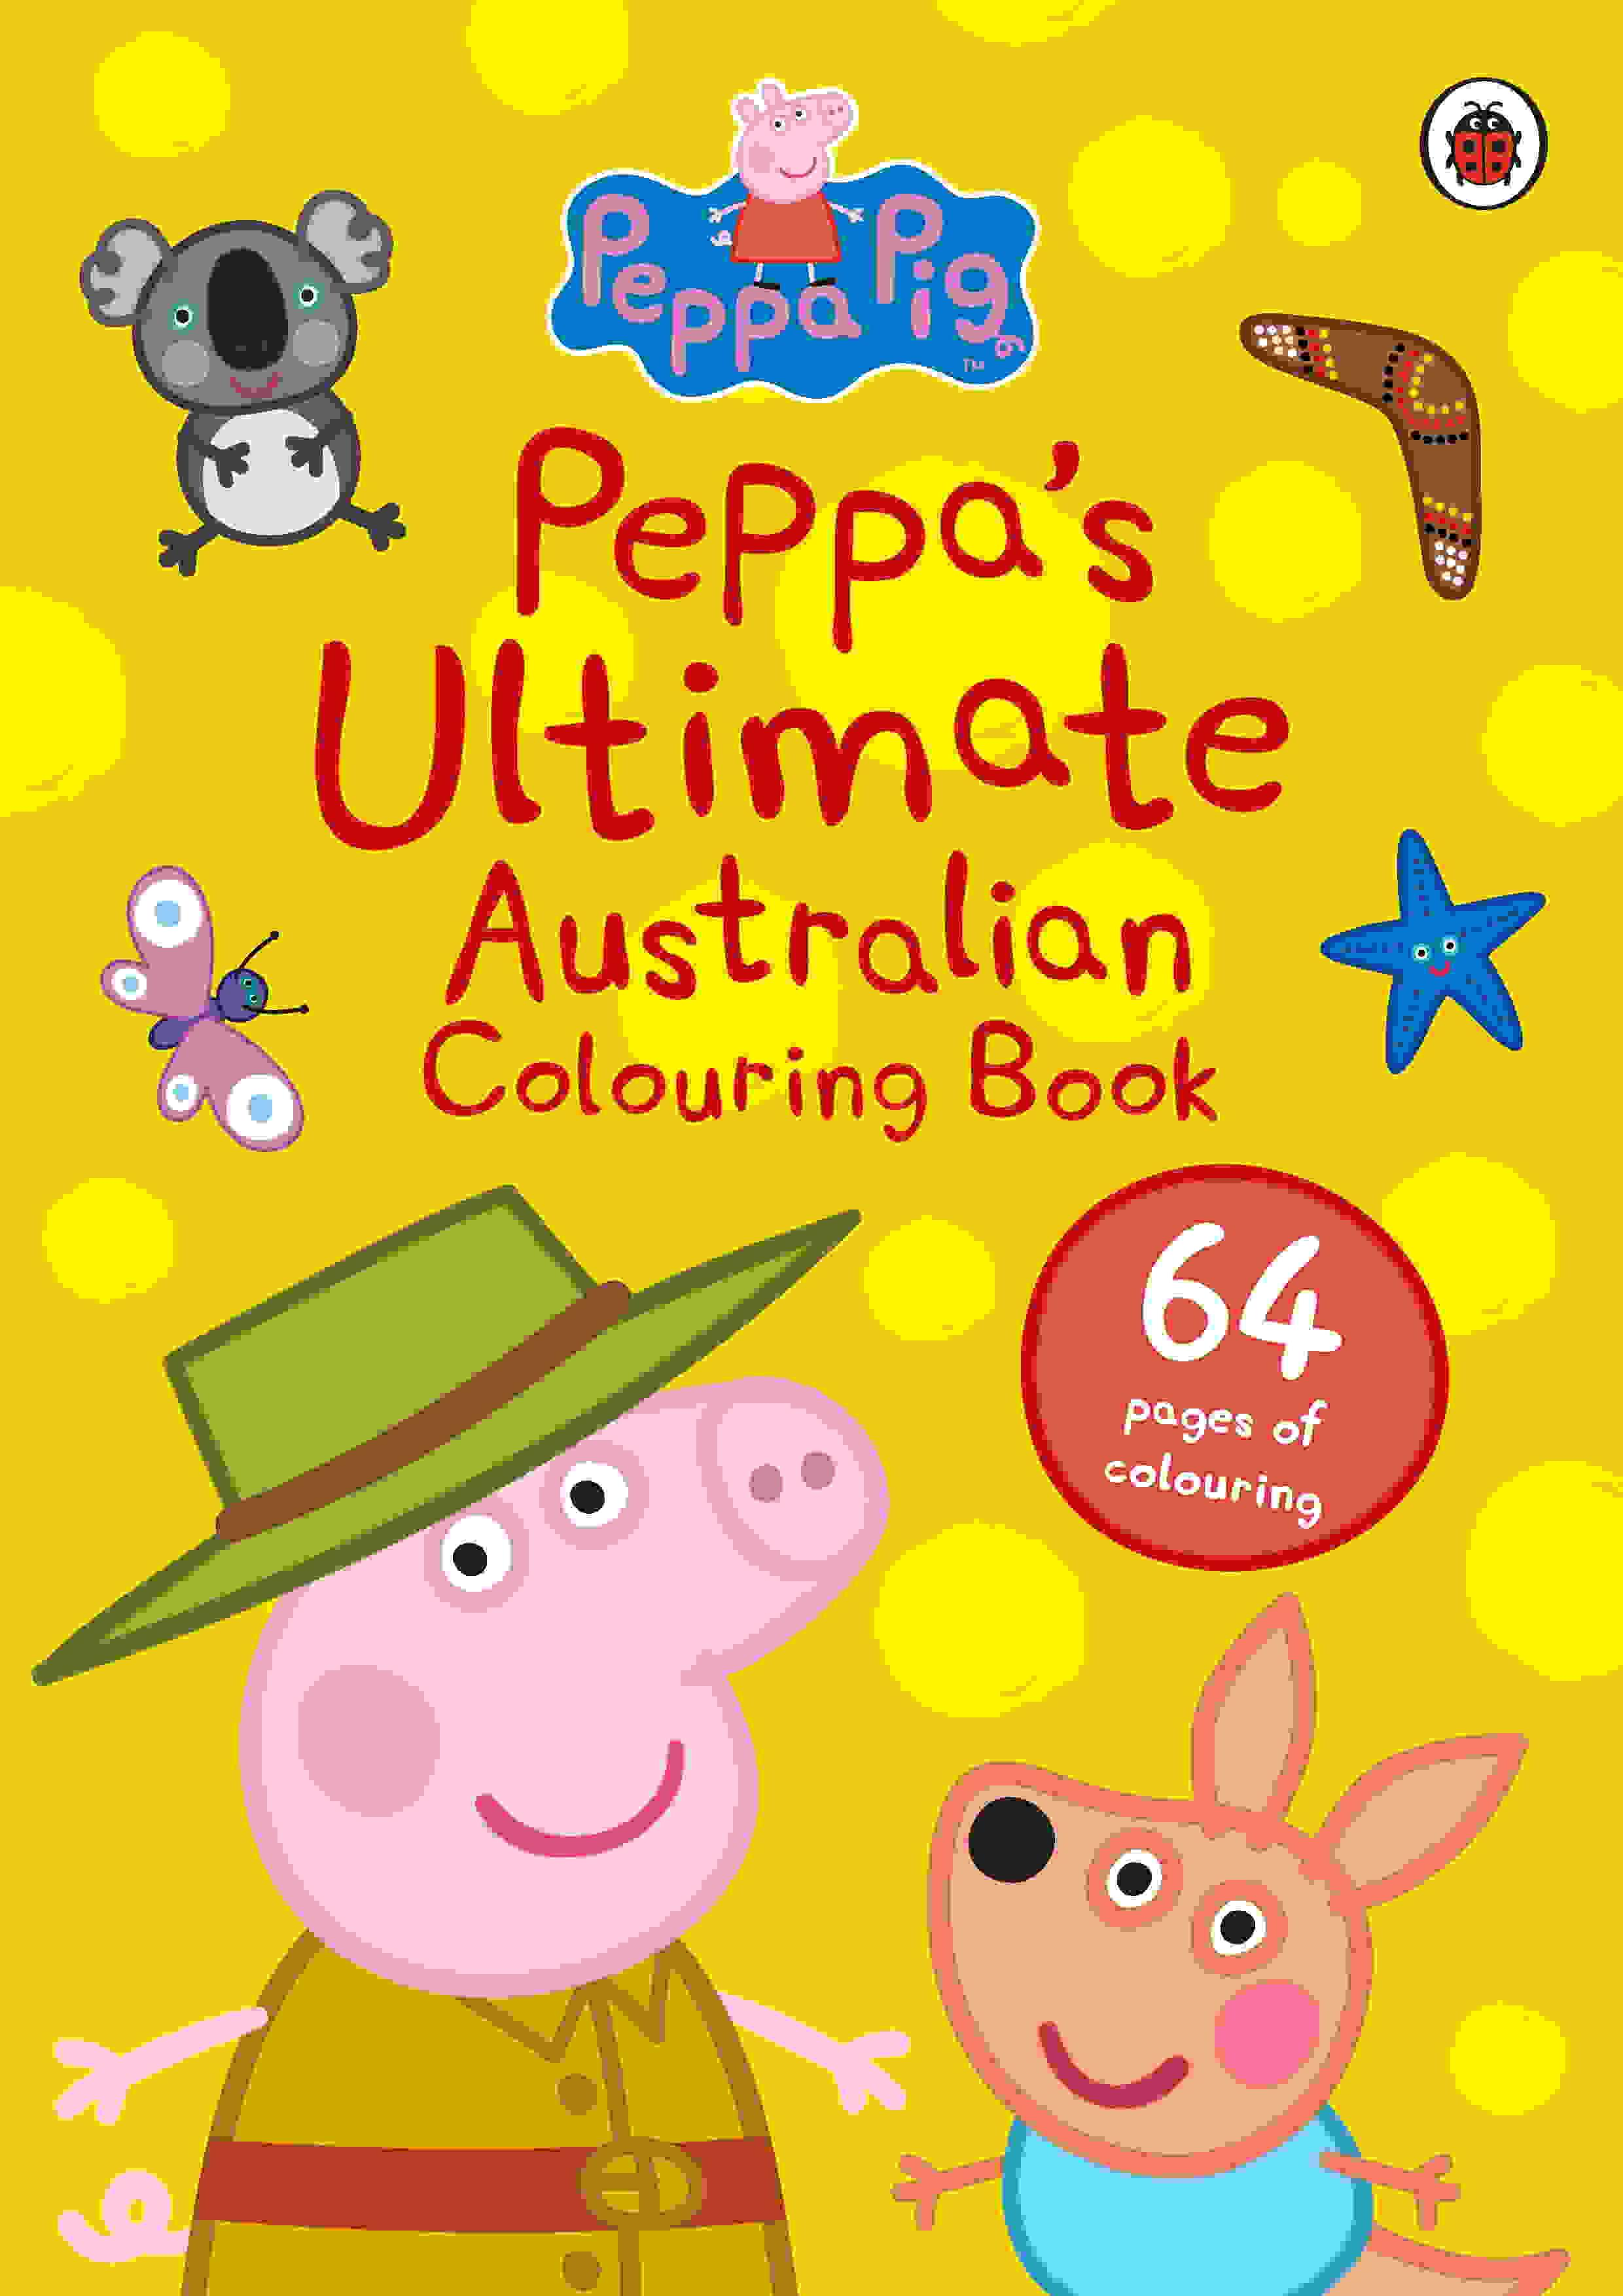 Peppa Pig: Peppa's Ultimate Australian Colouring Book